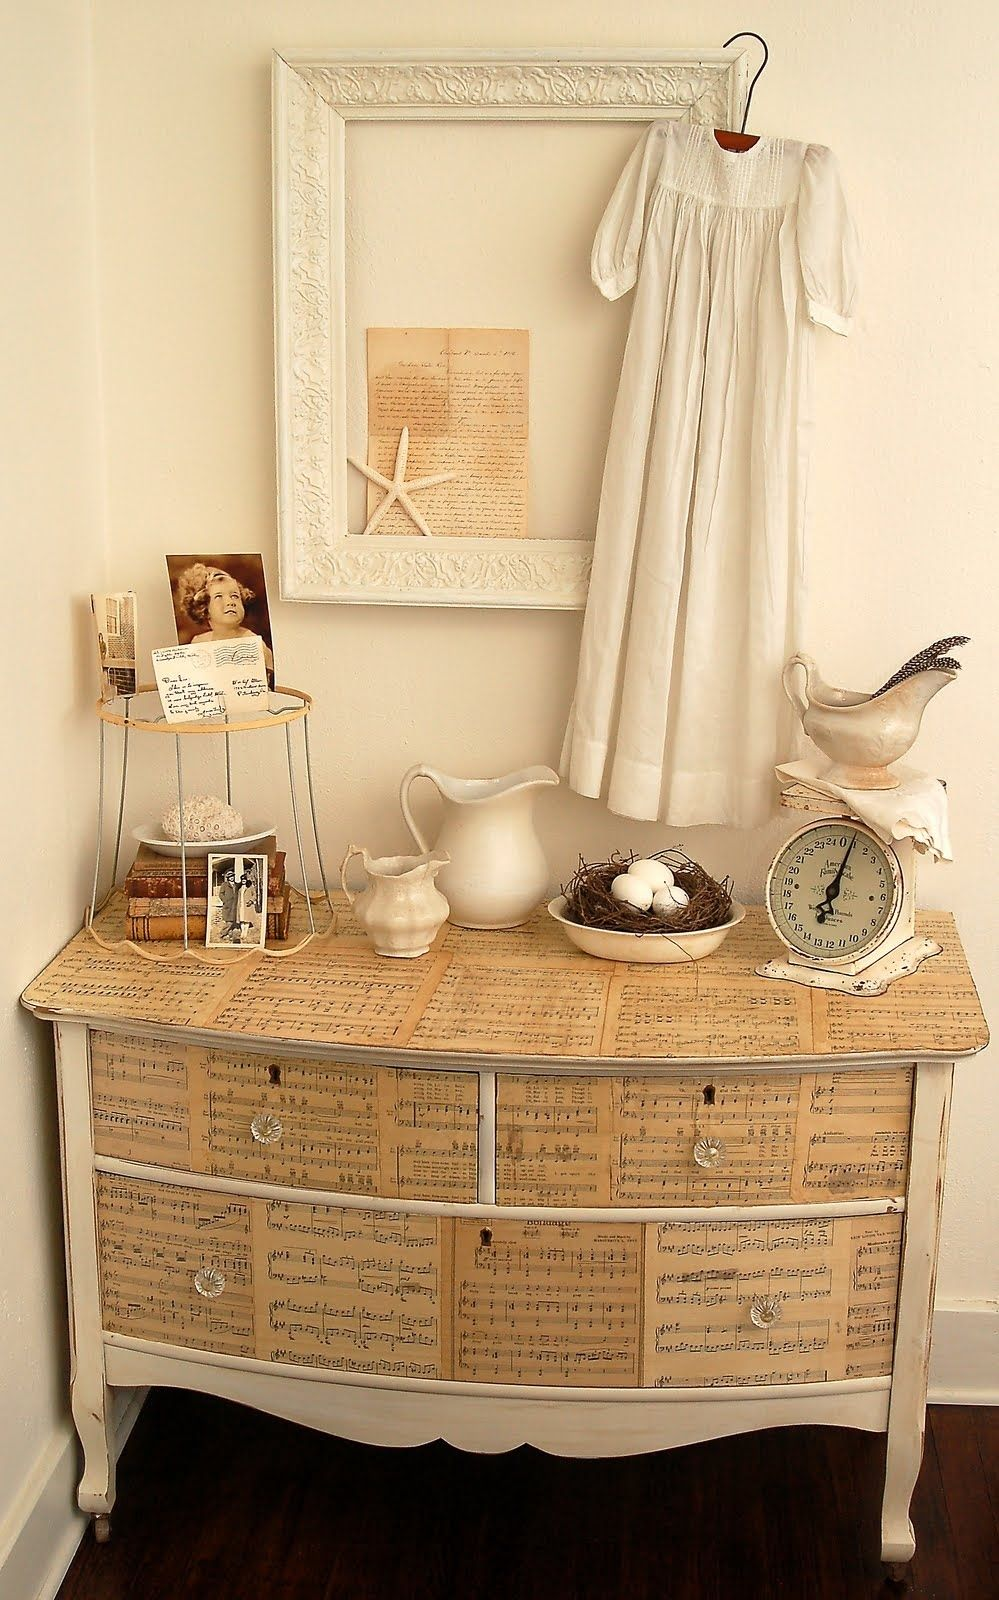 Adorable dresser covered with sheet music. #decoupage #furnituremakeover #DSDecor